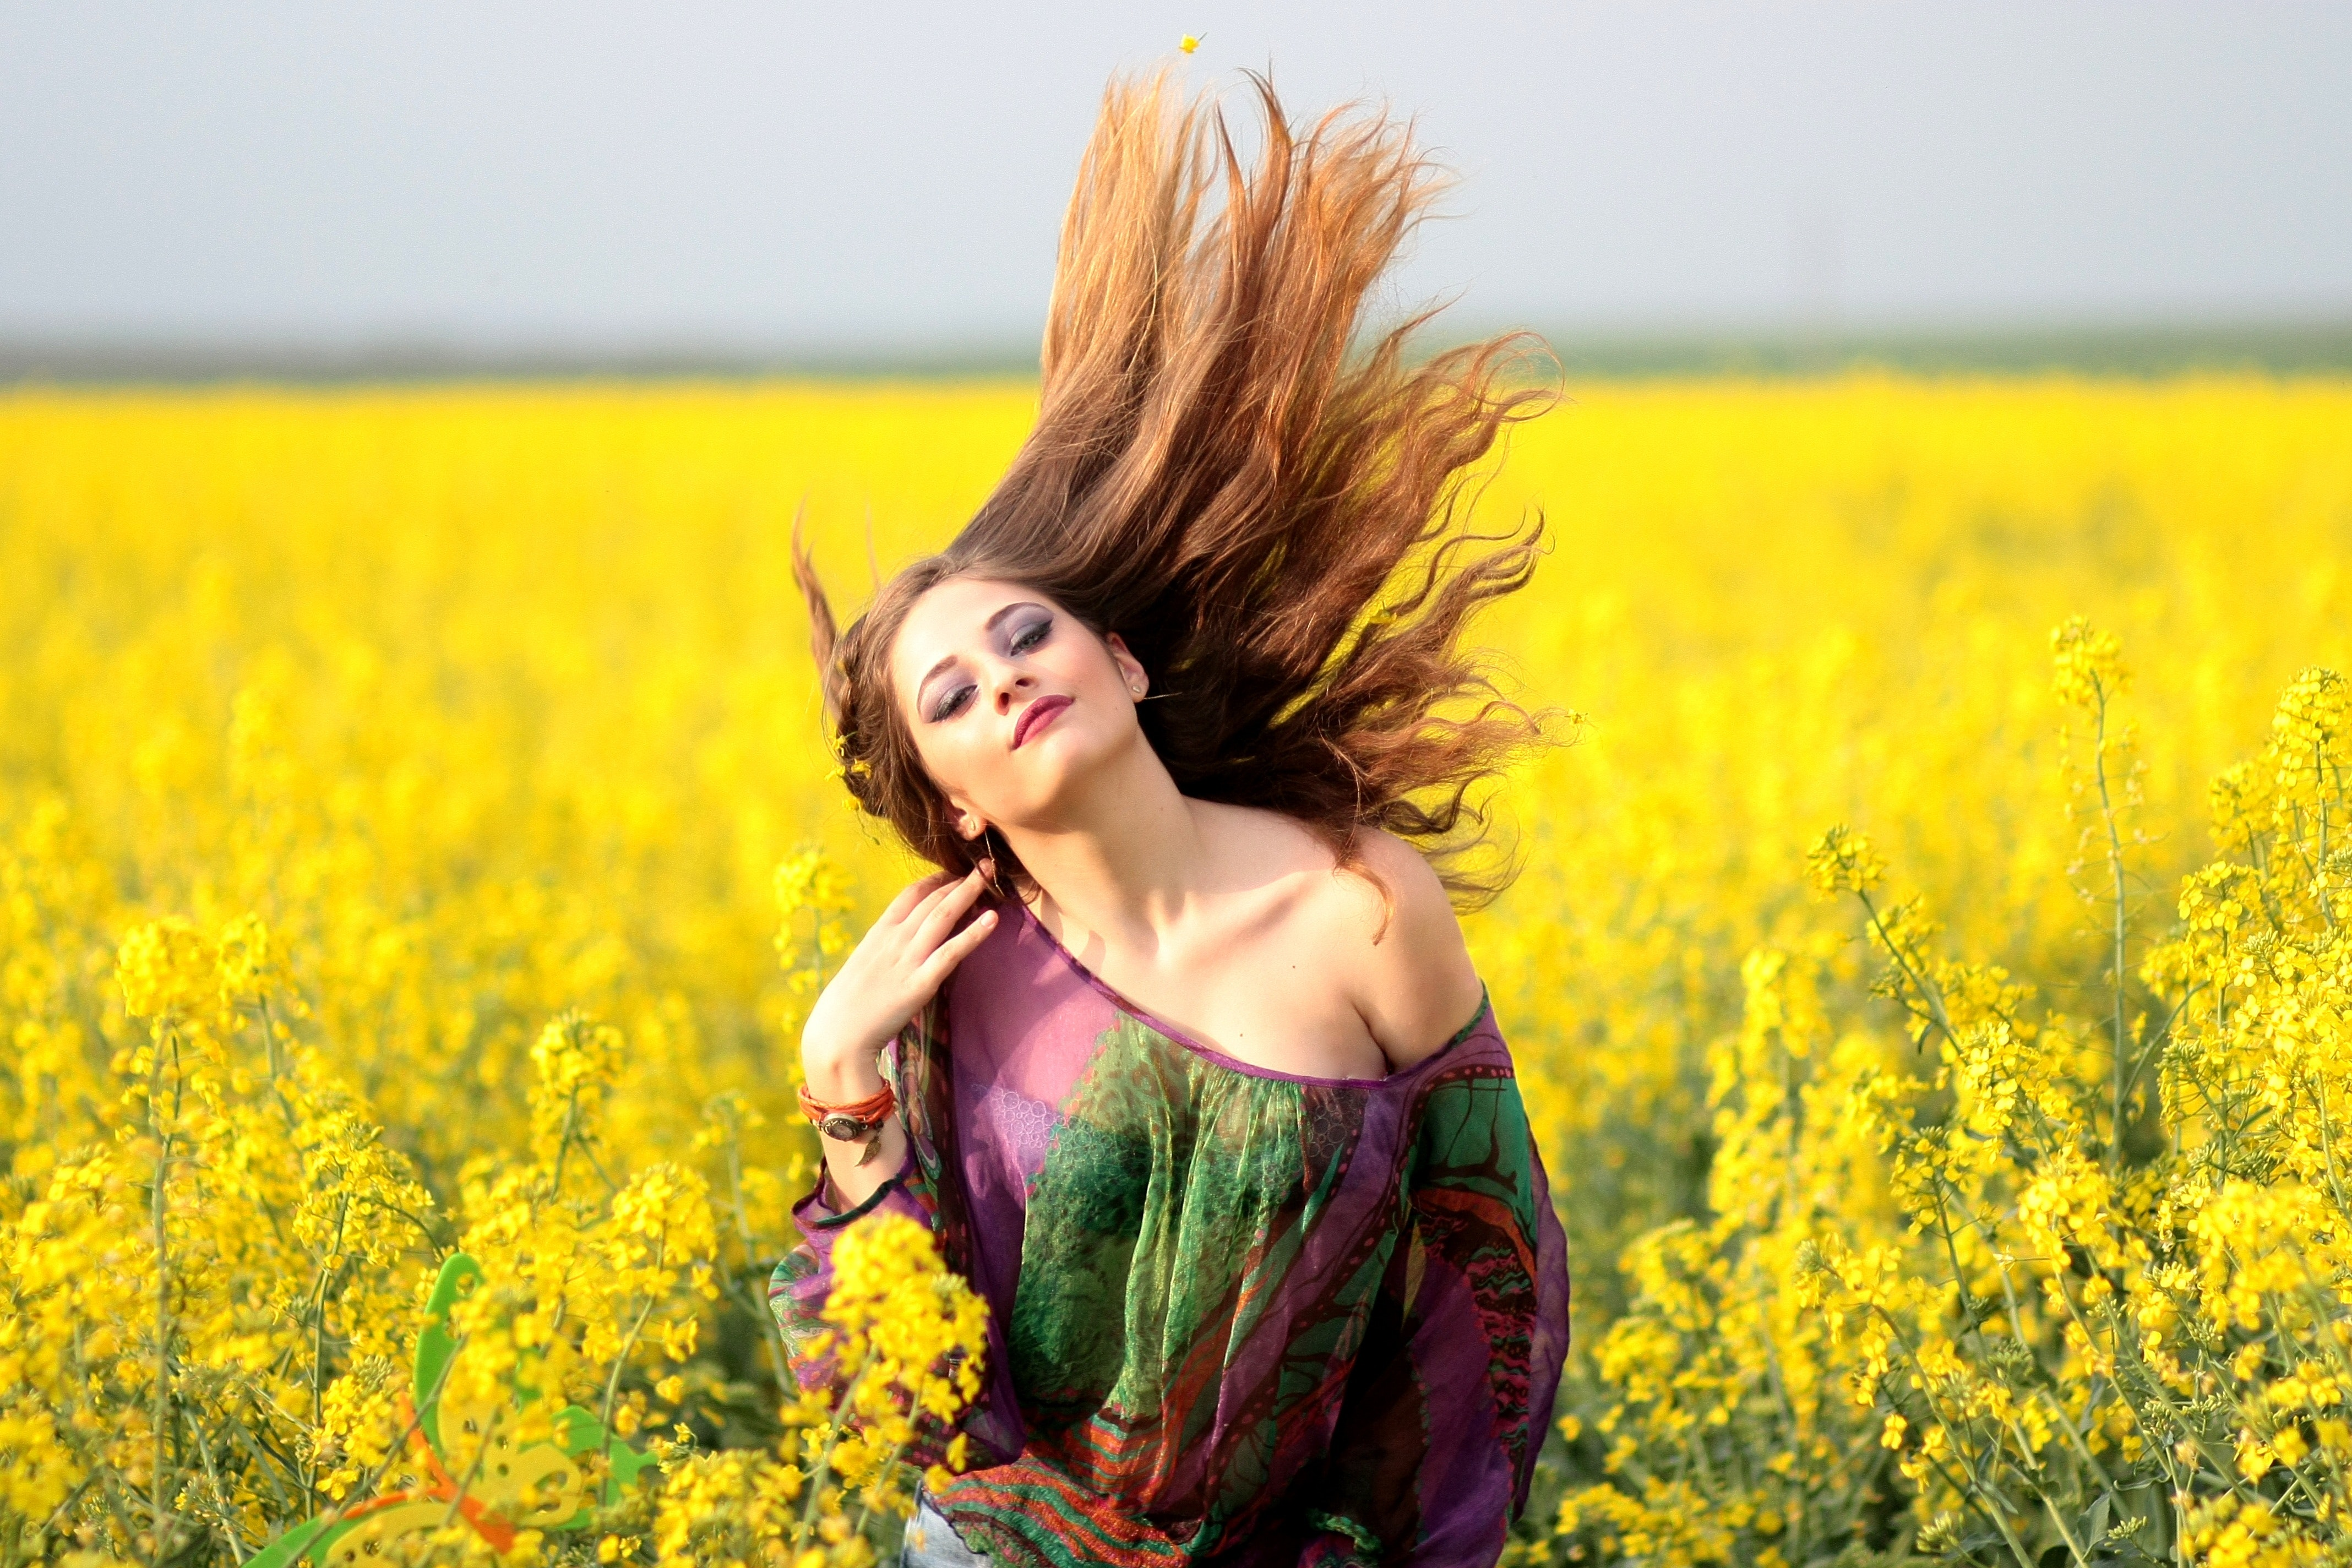 Portrait of young woman with yellow flowers in field photo